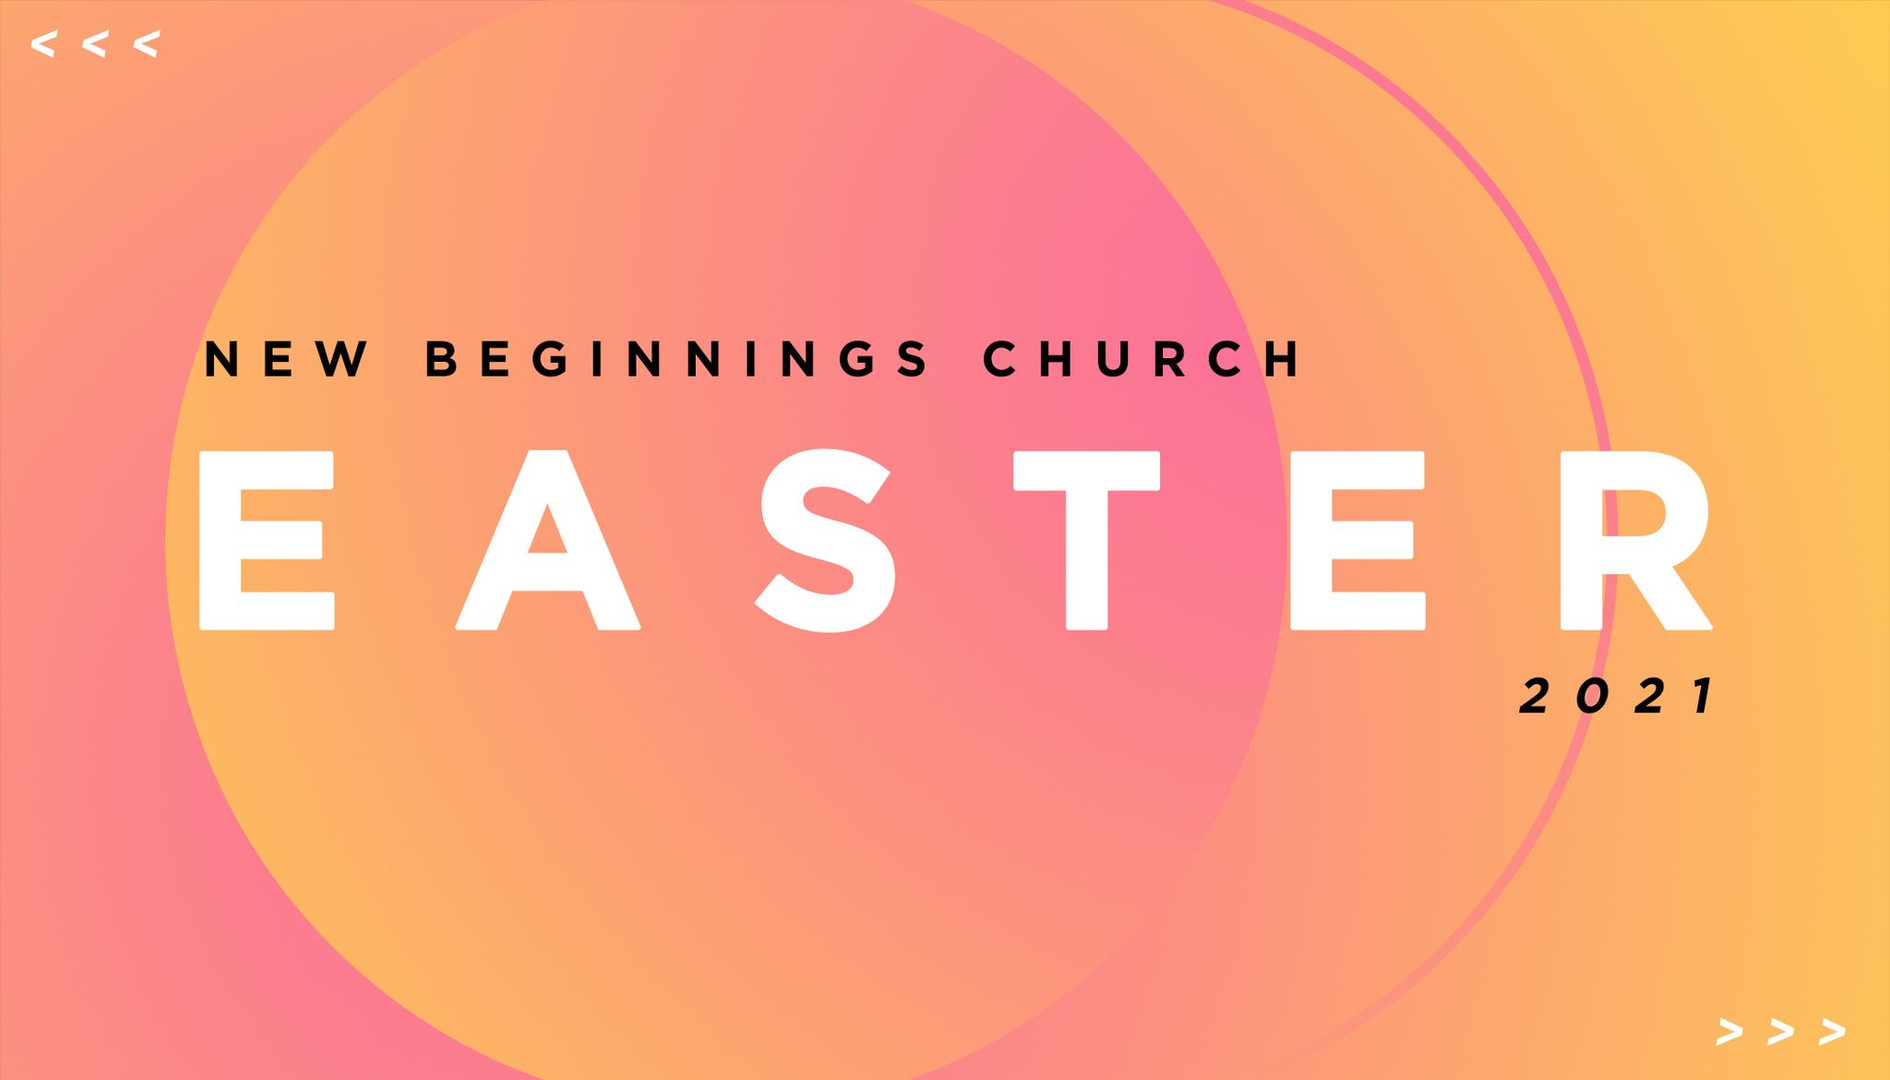 JOIN US ON EASTER WKND!